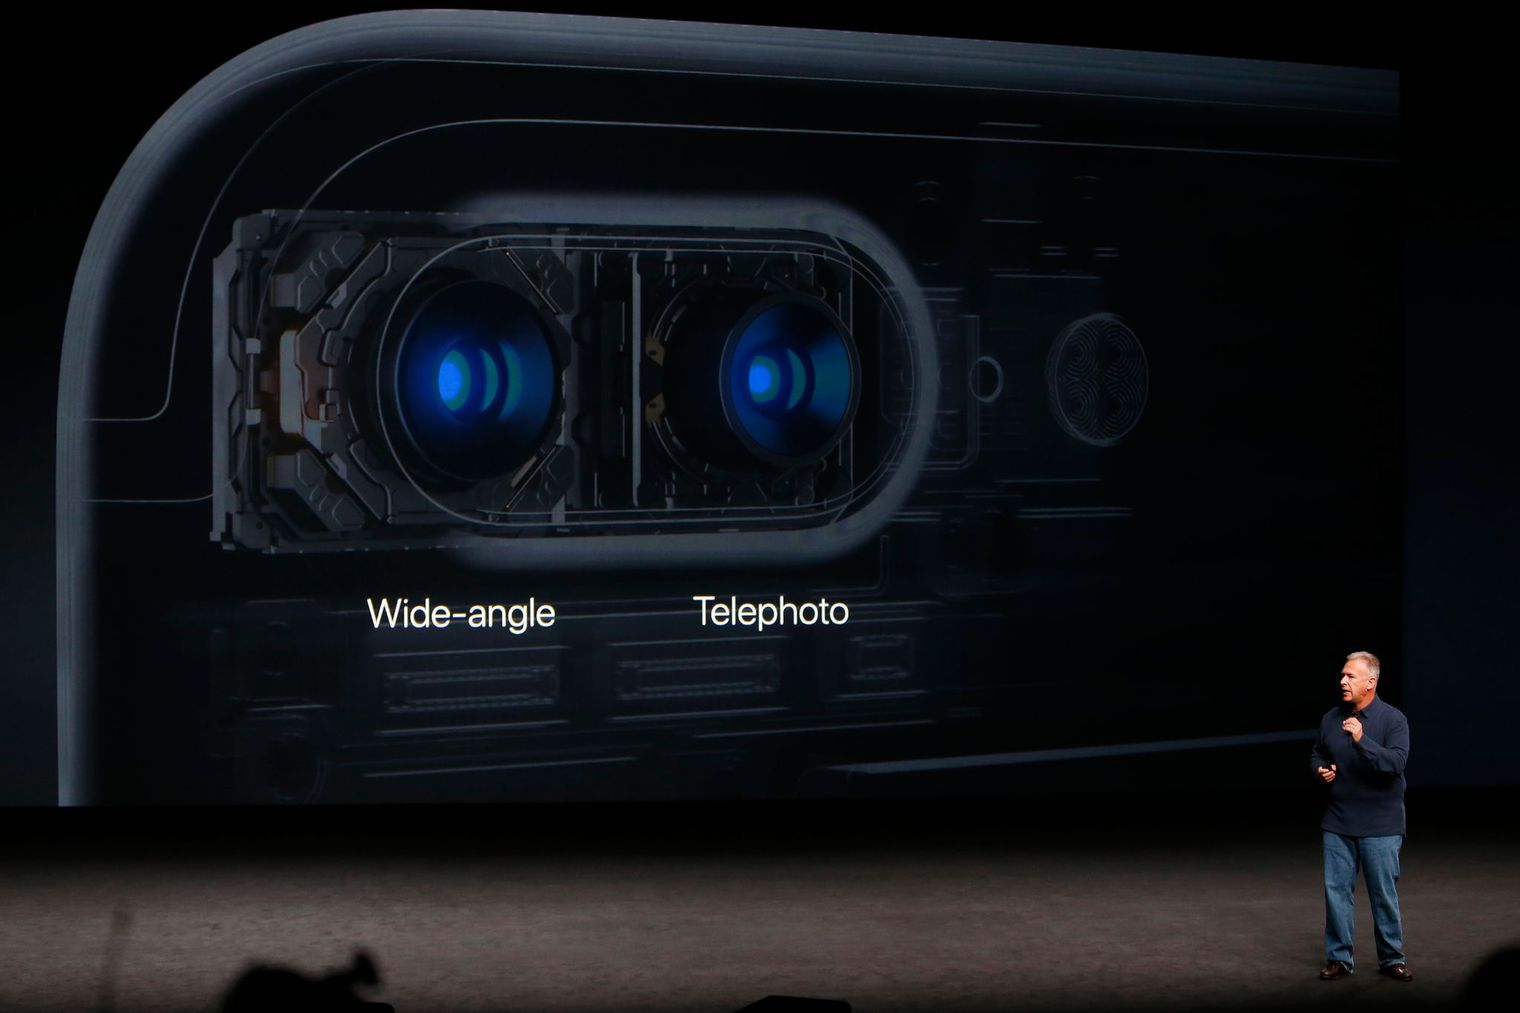 phil-schiller-discusses-the-camera-on-the-iphone-7-during-a-media-event-in-san-francisco_5664909